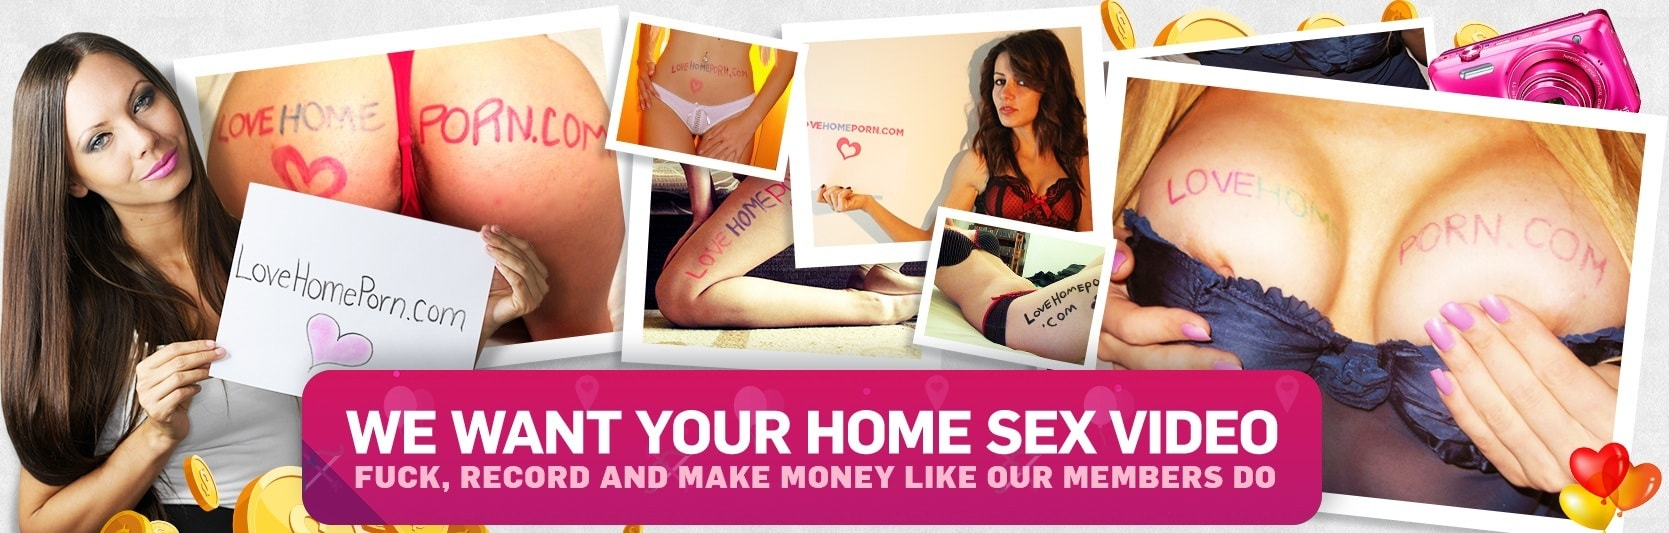 Submit Your Home Porn